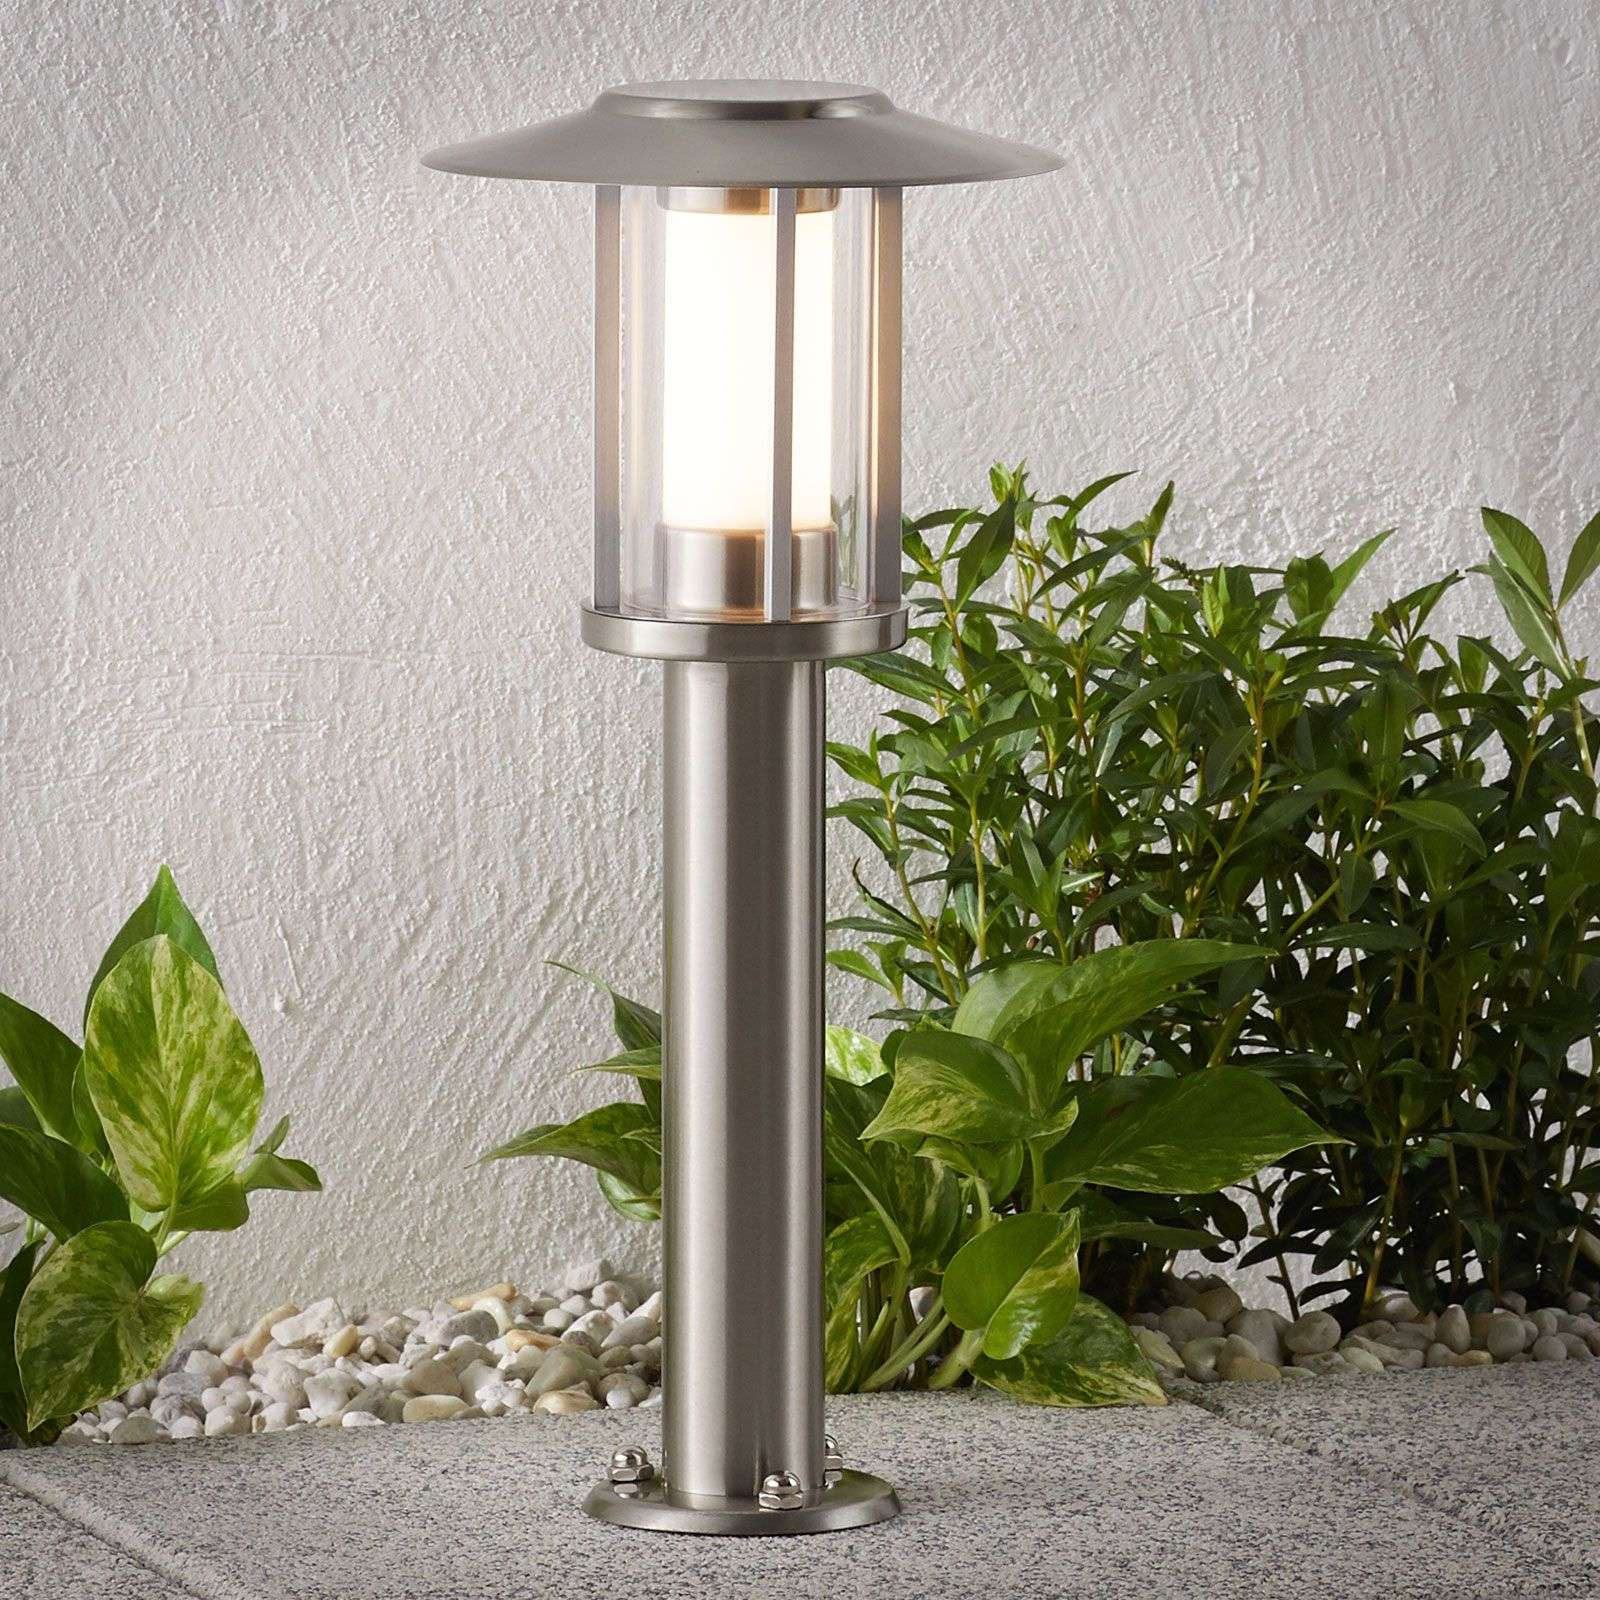 Lampioncino a LED Gregory in acciaio inox